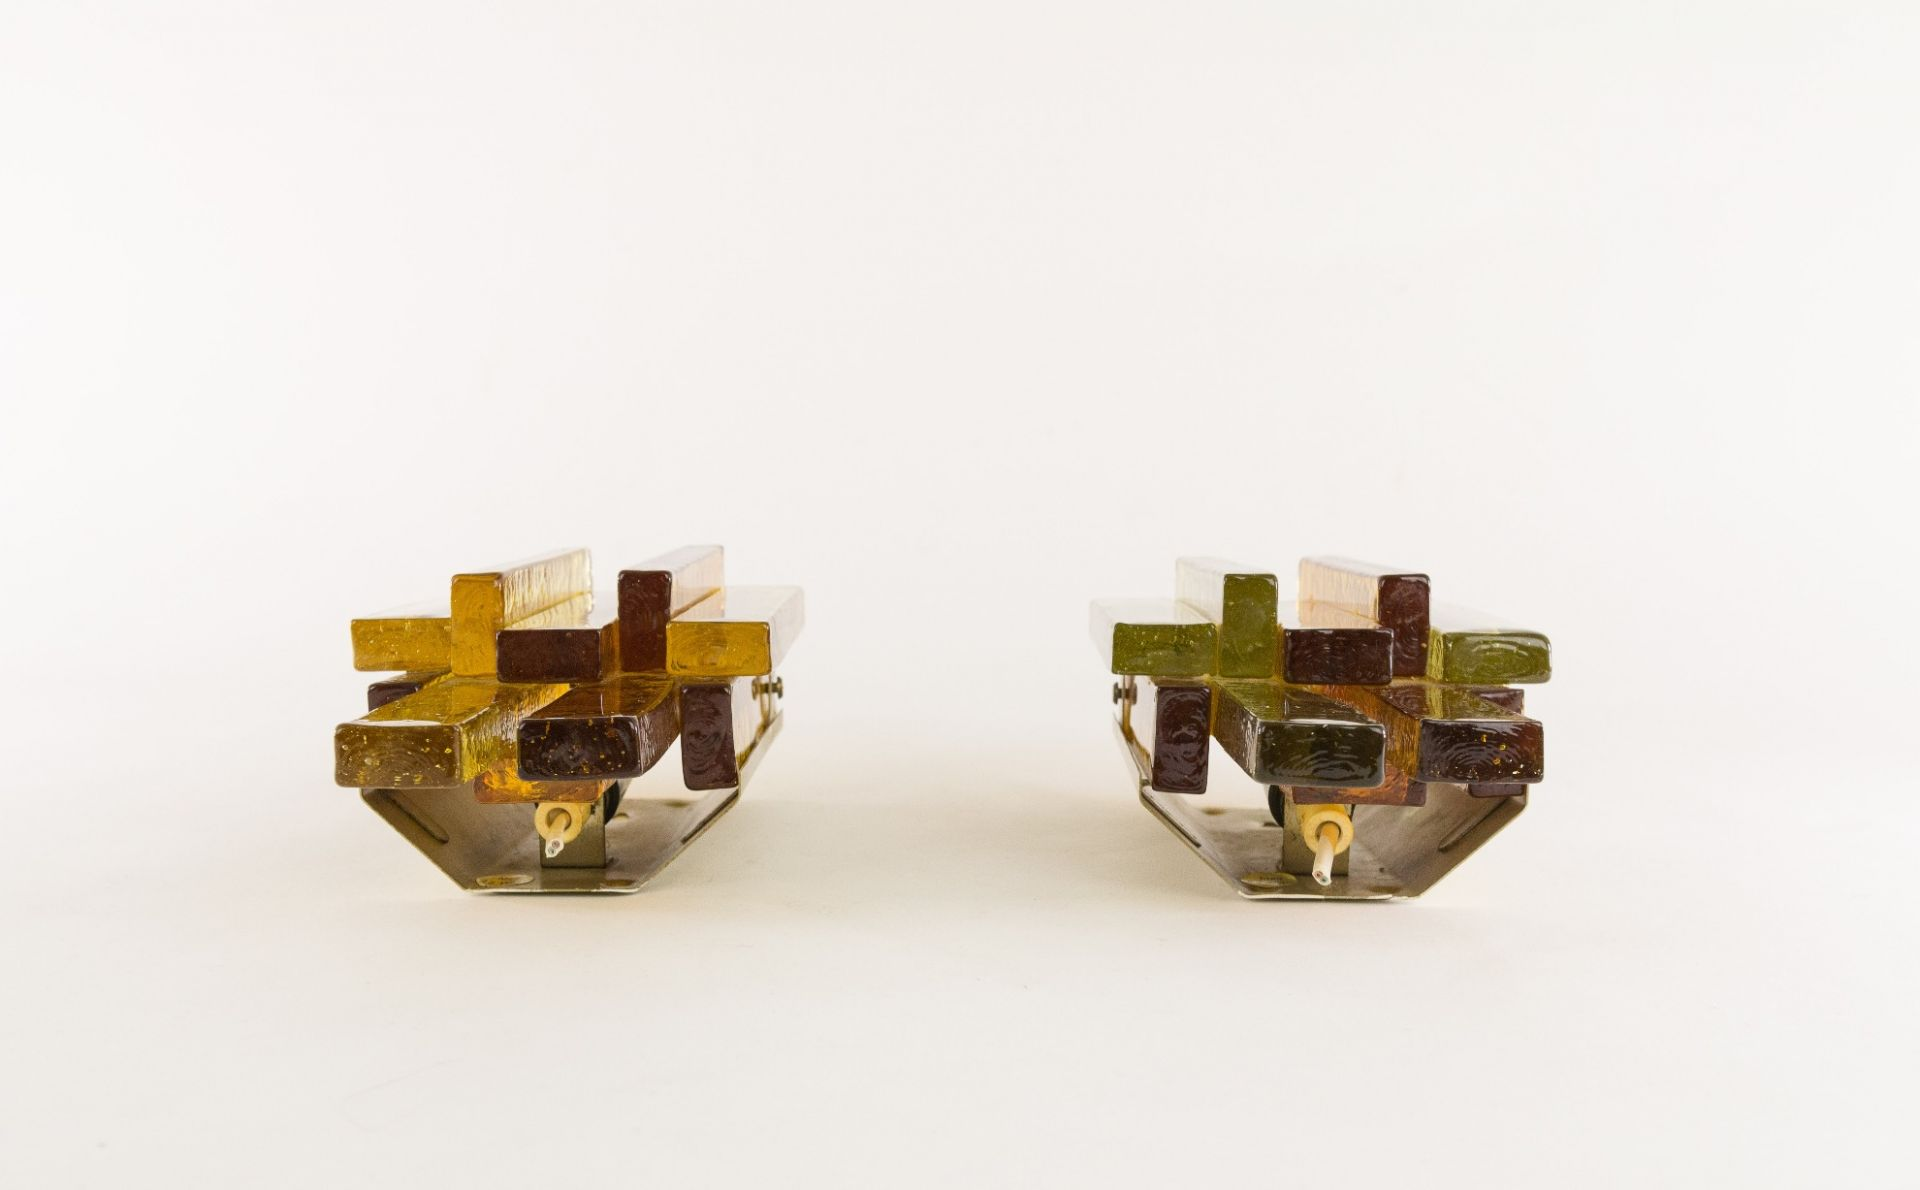 Pair of wall lamps designed by Svend Aage Holm Sørensen, 1960s